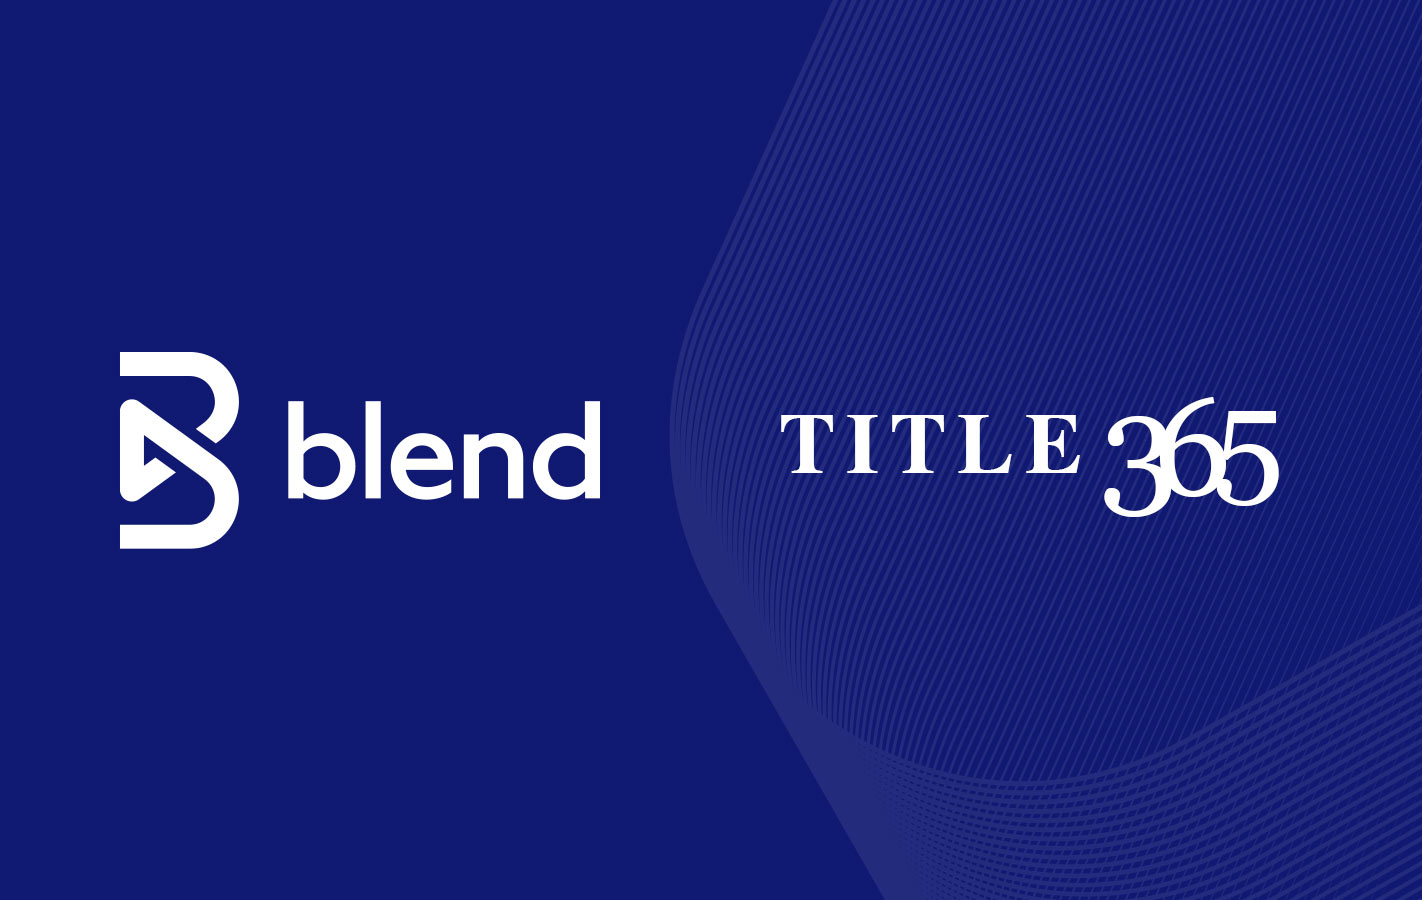 Blend Acquires Title365